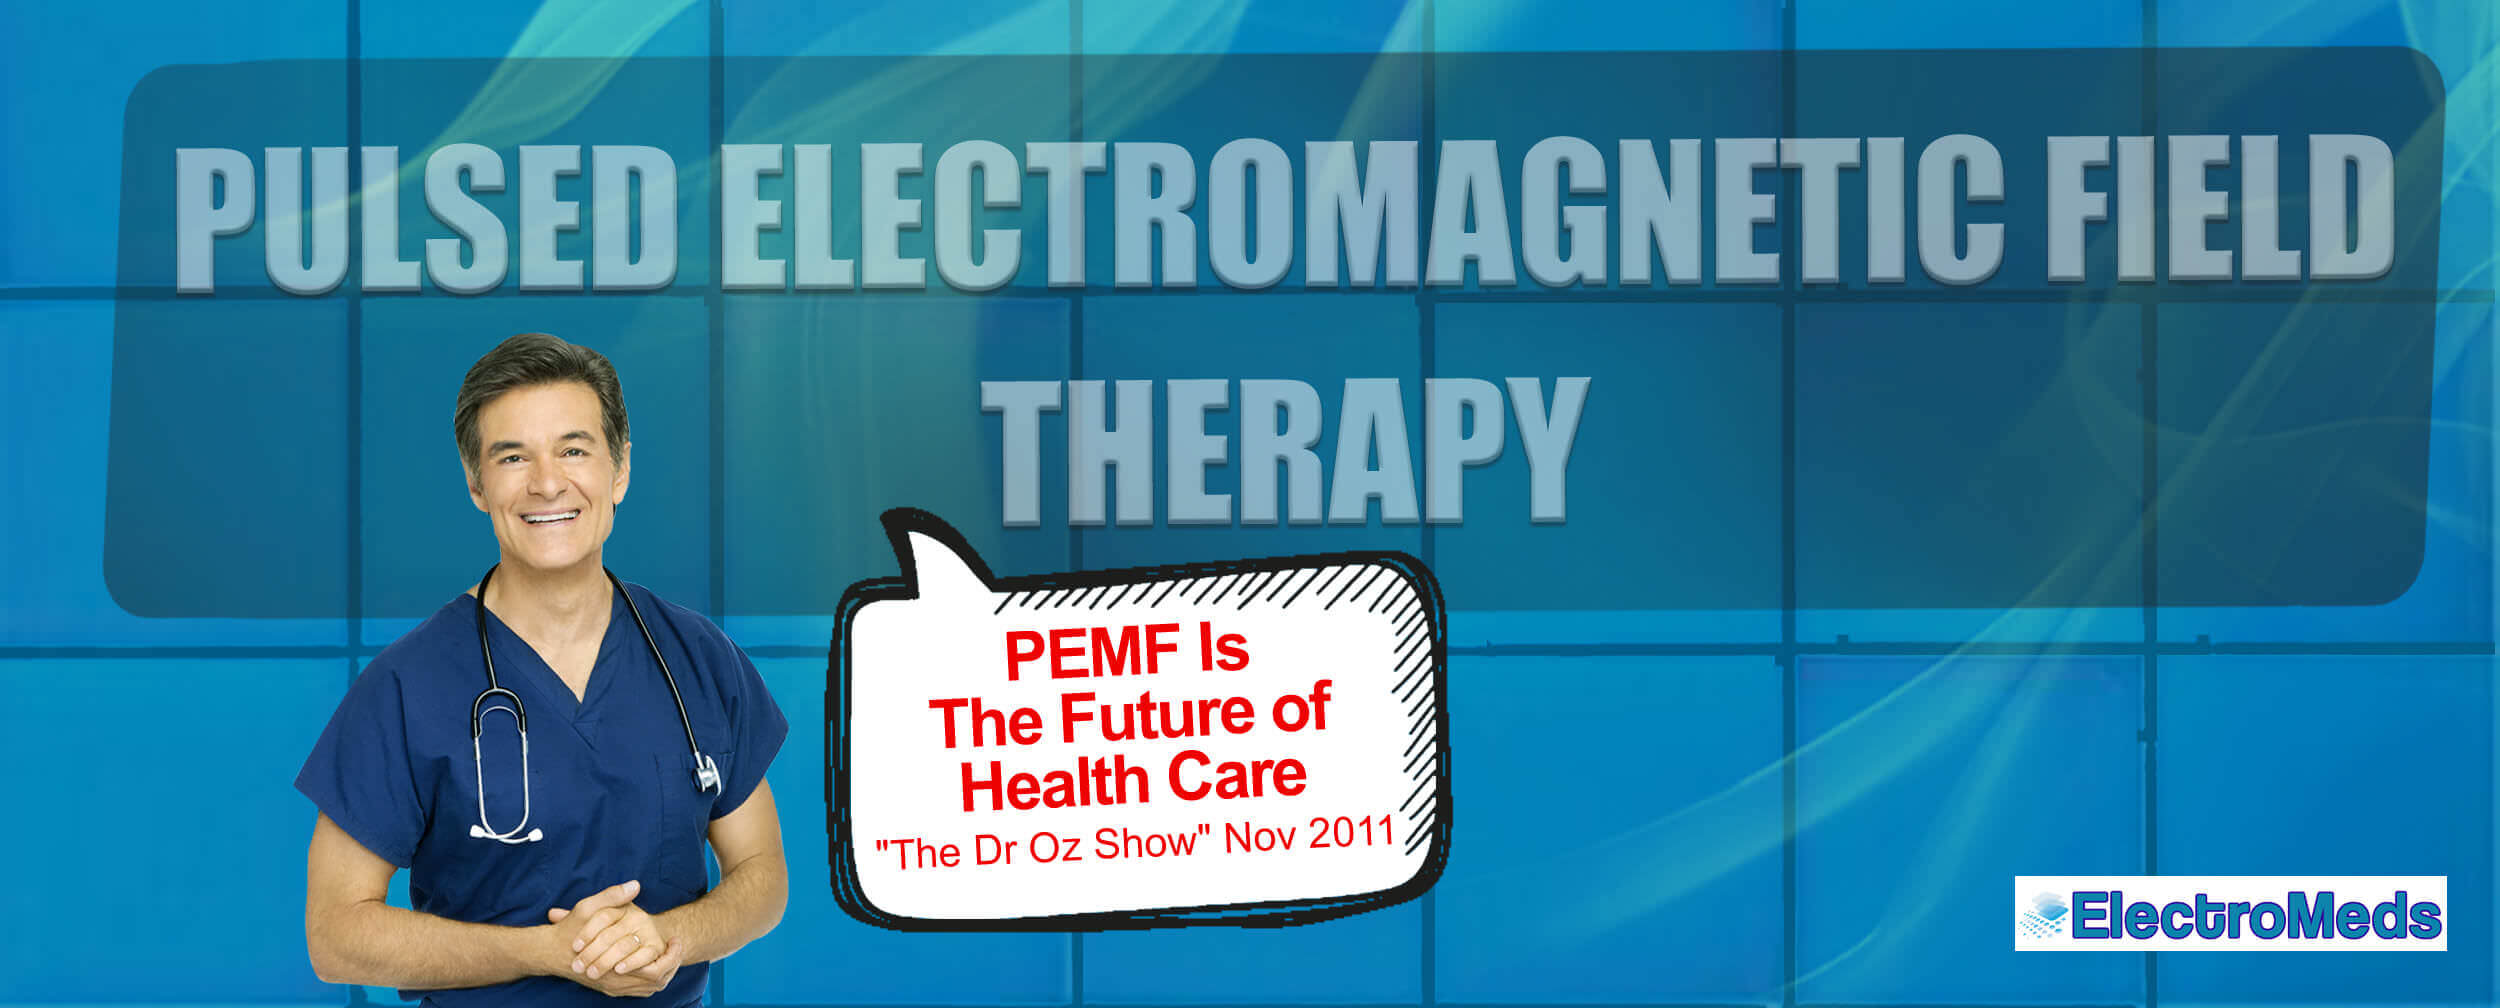 """PEMF Pulsed ElectroMagnetic Fields Therapy is """"The Future of Health Care"""""""